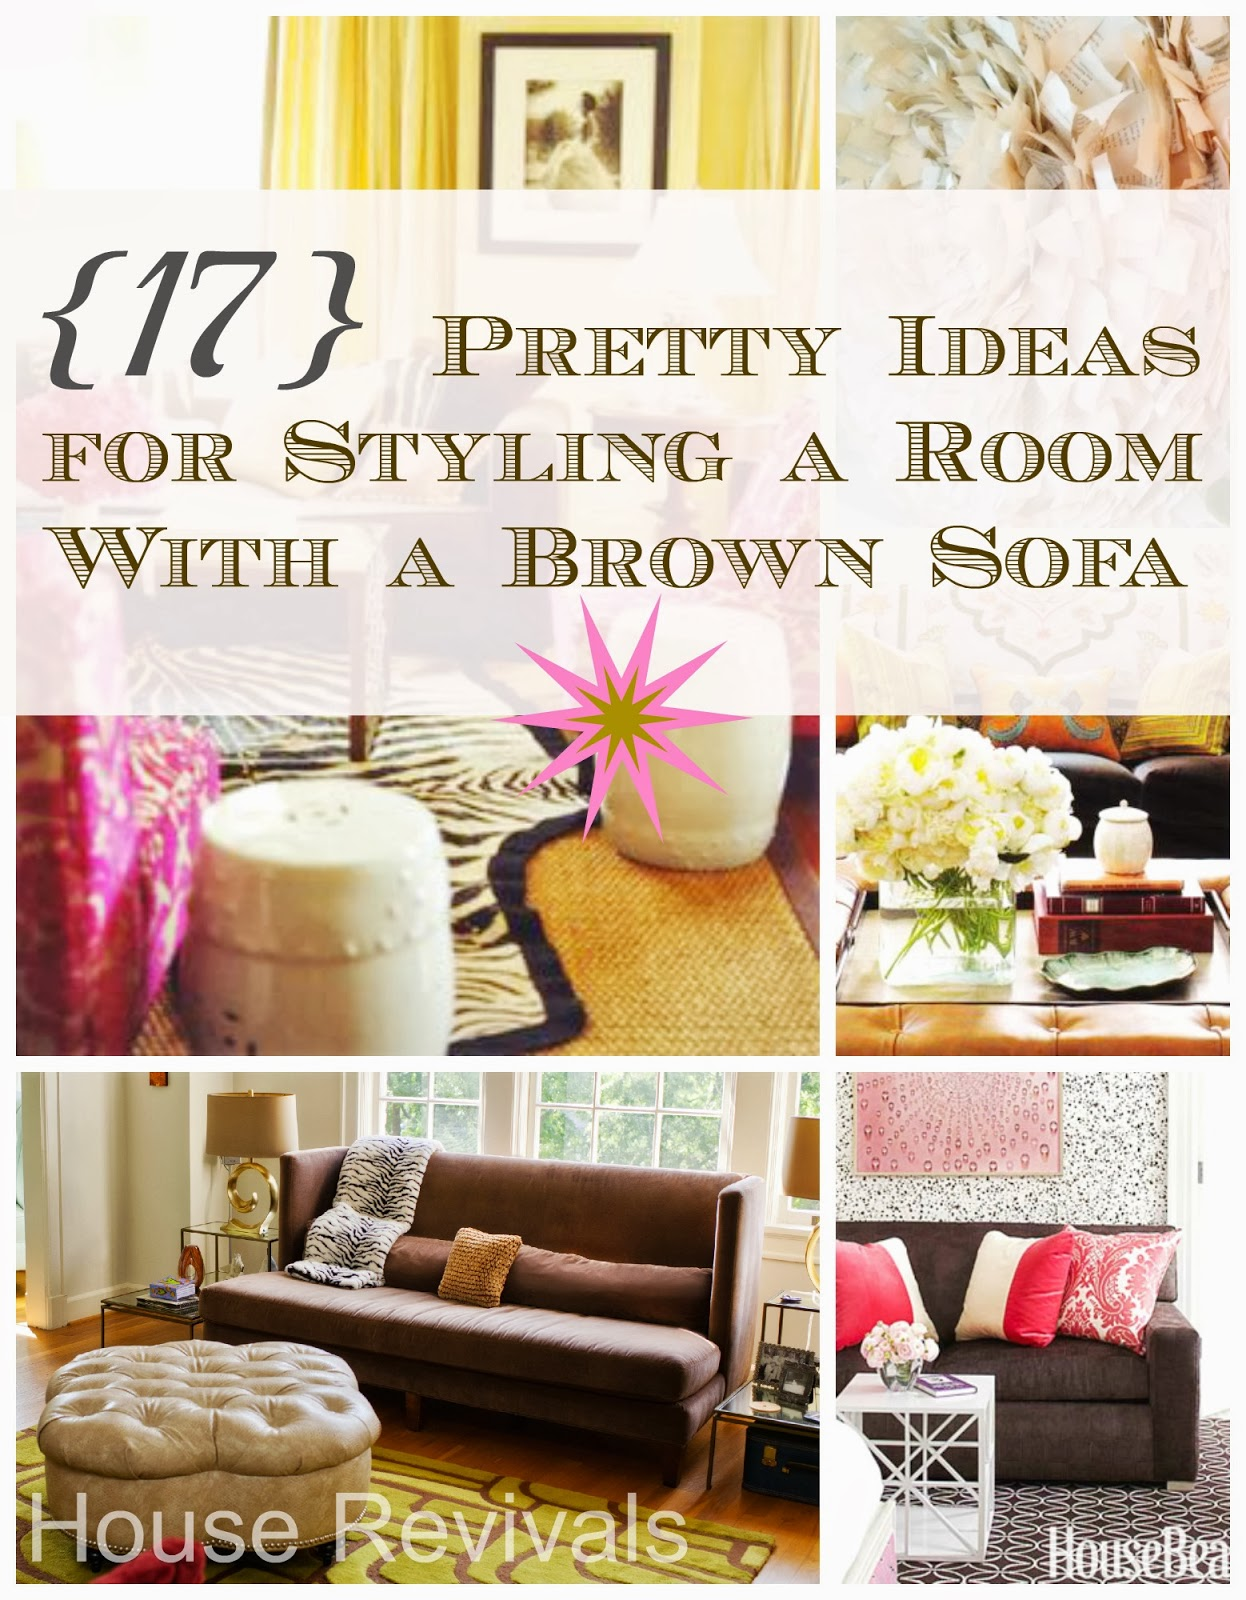 House Revivals 17 Pretty Ways to Decorate With a Brown Sofa